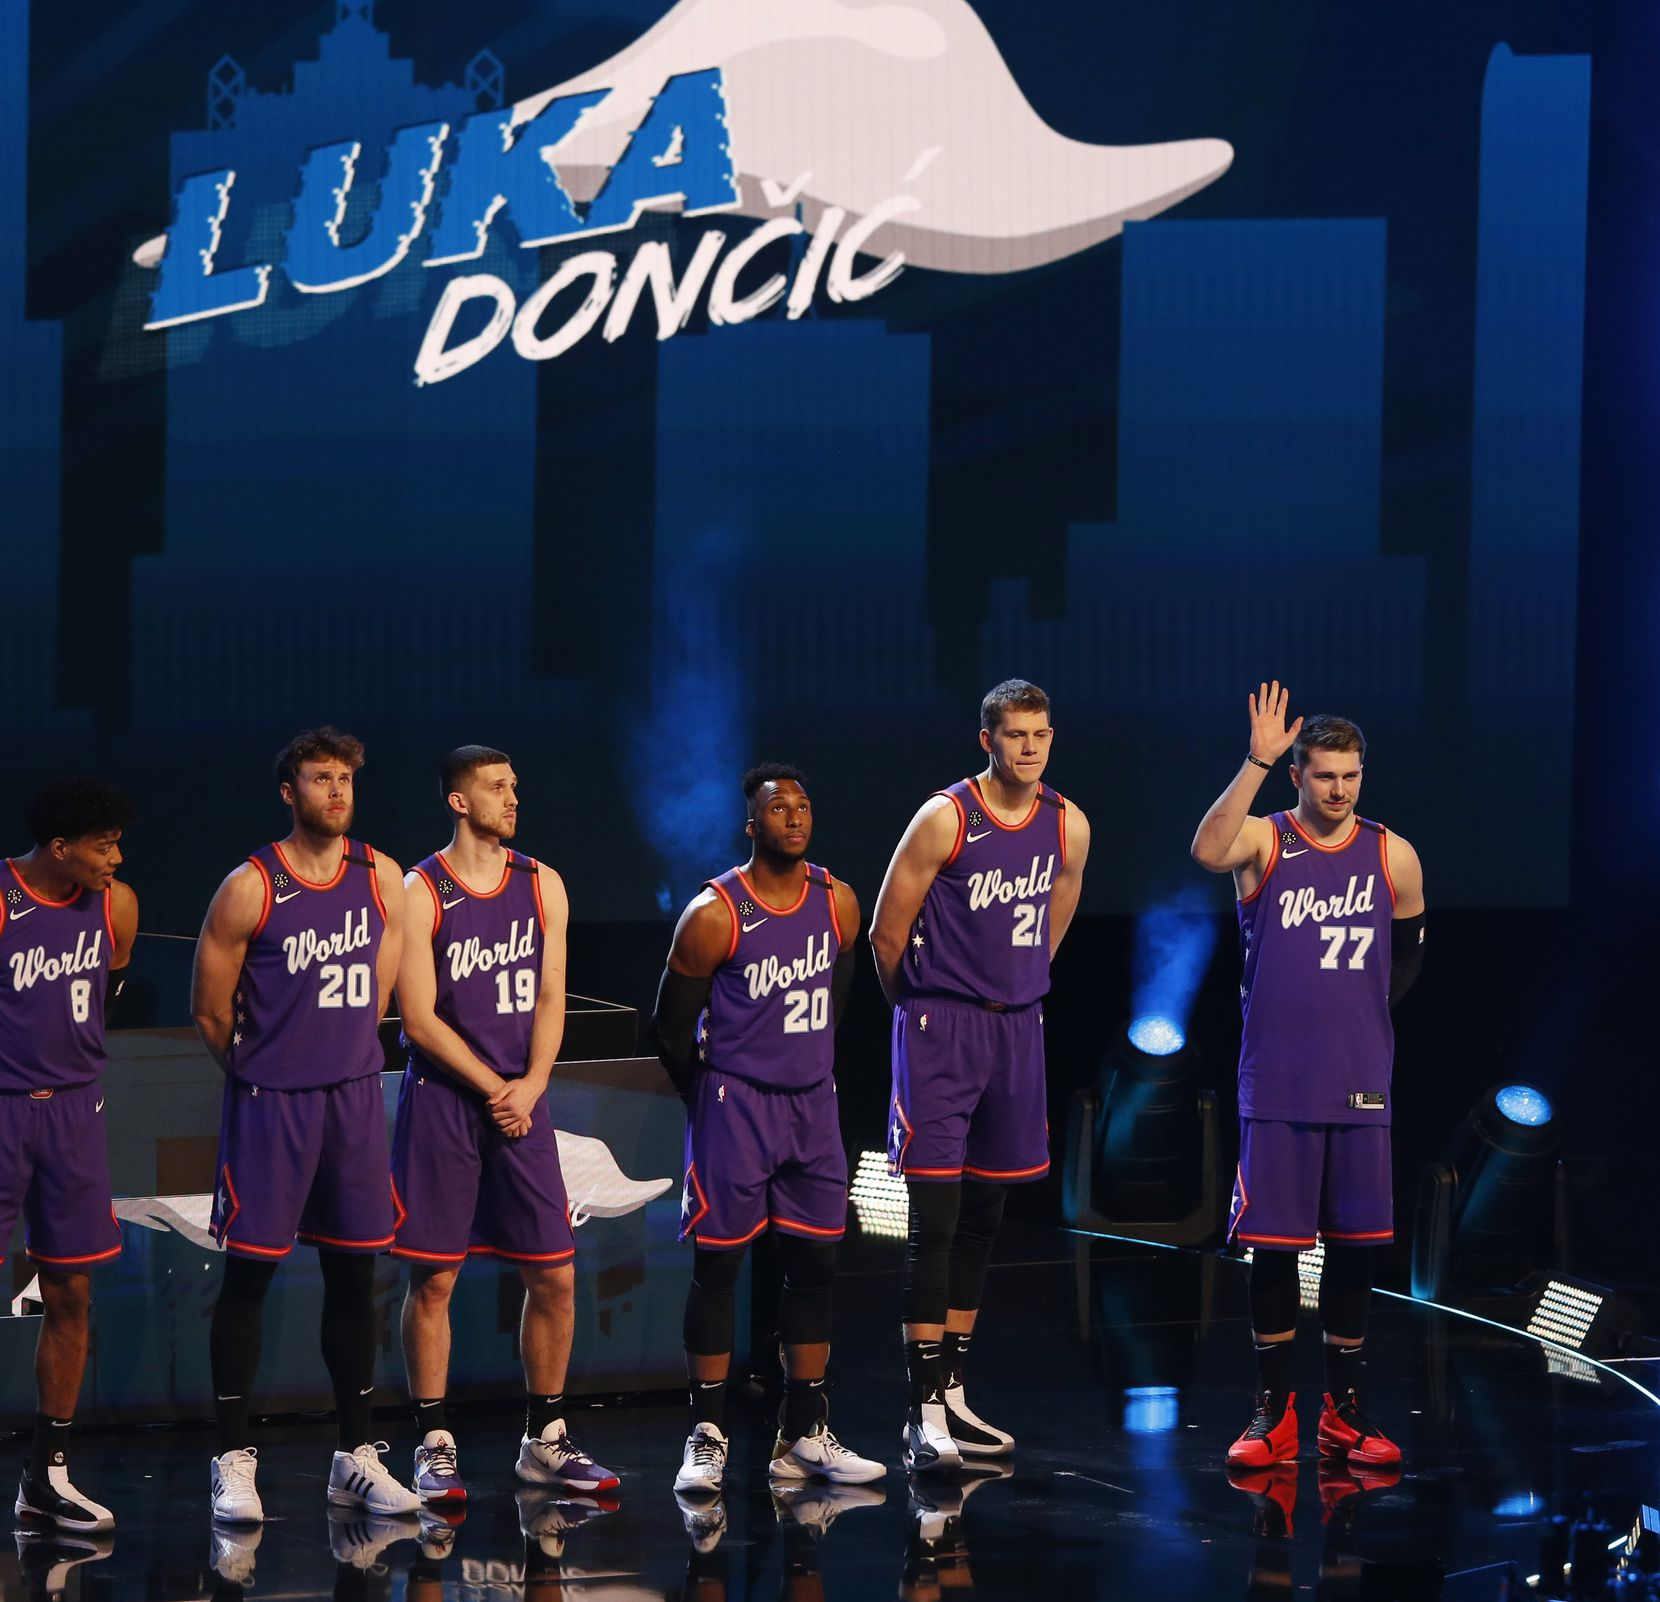 Dallas Mavericks Luka Doncic waves as he is introduced on the World Team before the NBA Rising Stars game during the NBA All-Star 2020 at United Center in Chicago on Friday, February 14, 2020.